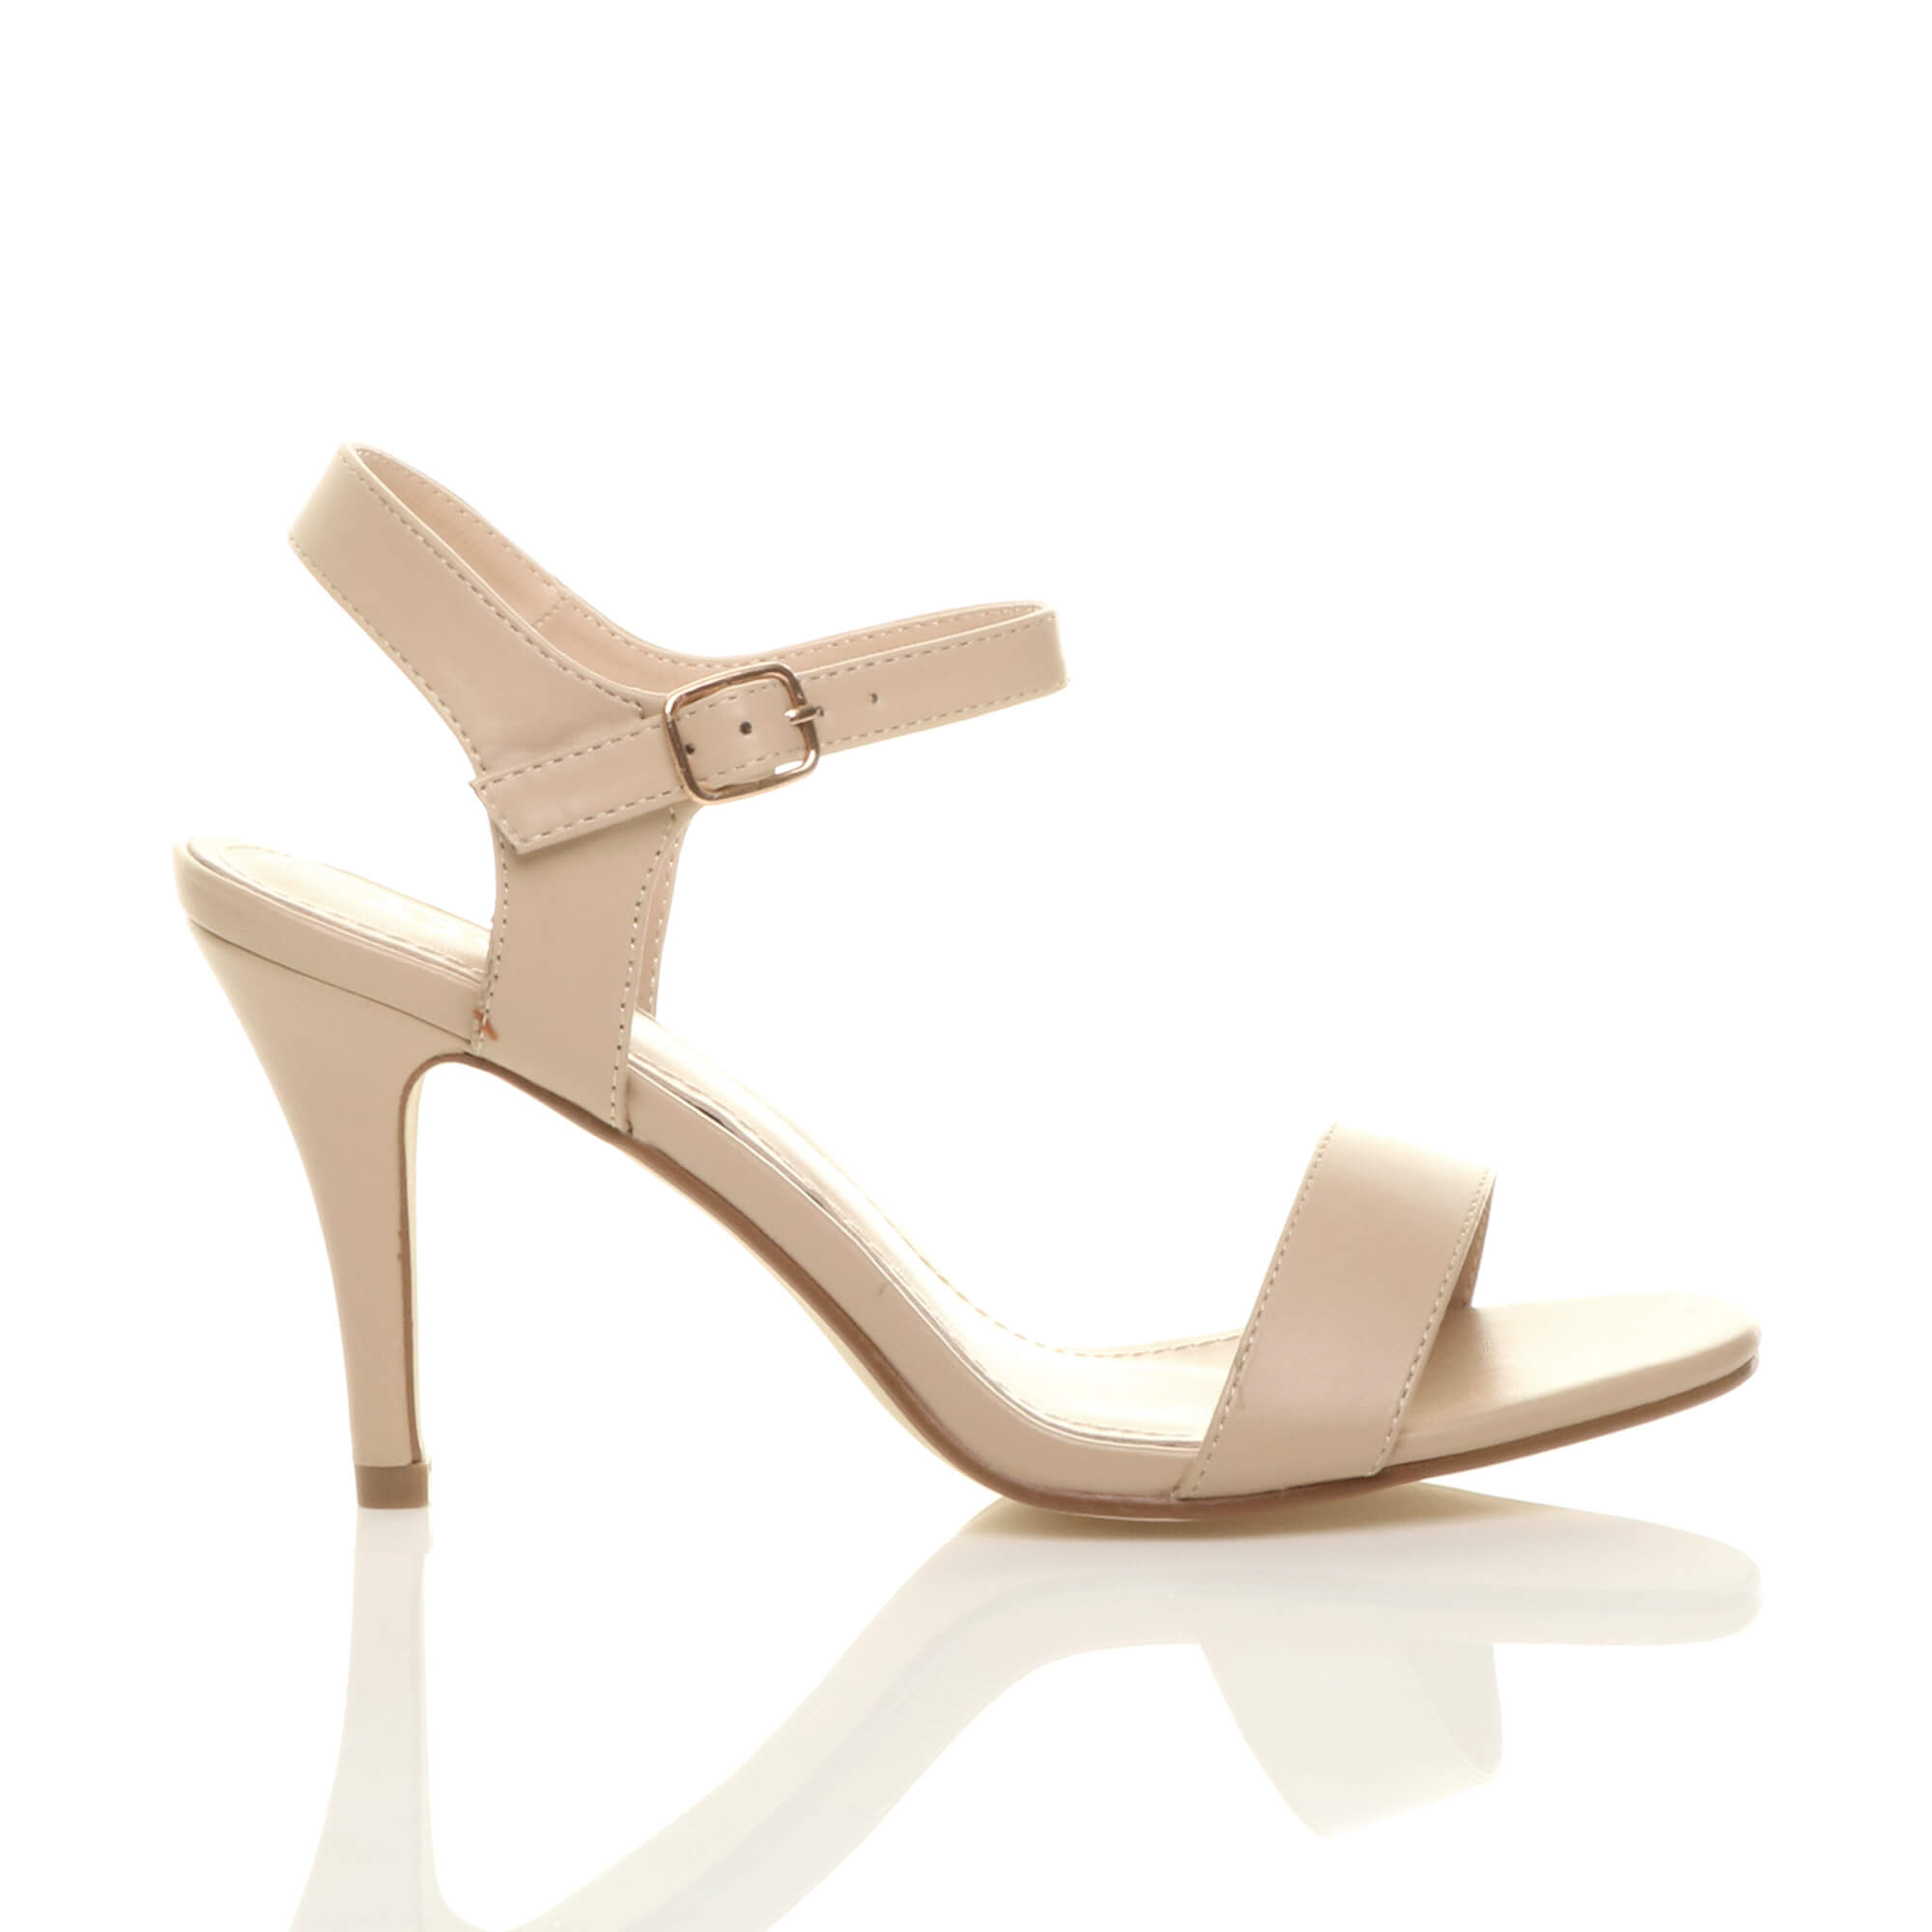 WOMENS-LADIES-HIGH-HEEL-BUCKLE-STRAPPY-BASIC-BARELY-THERE-SANDALS-SHOES-SIZE thumbnail 94